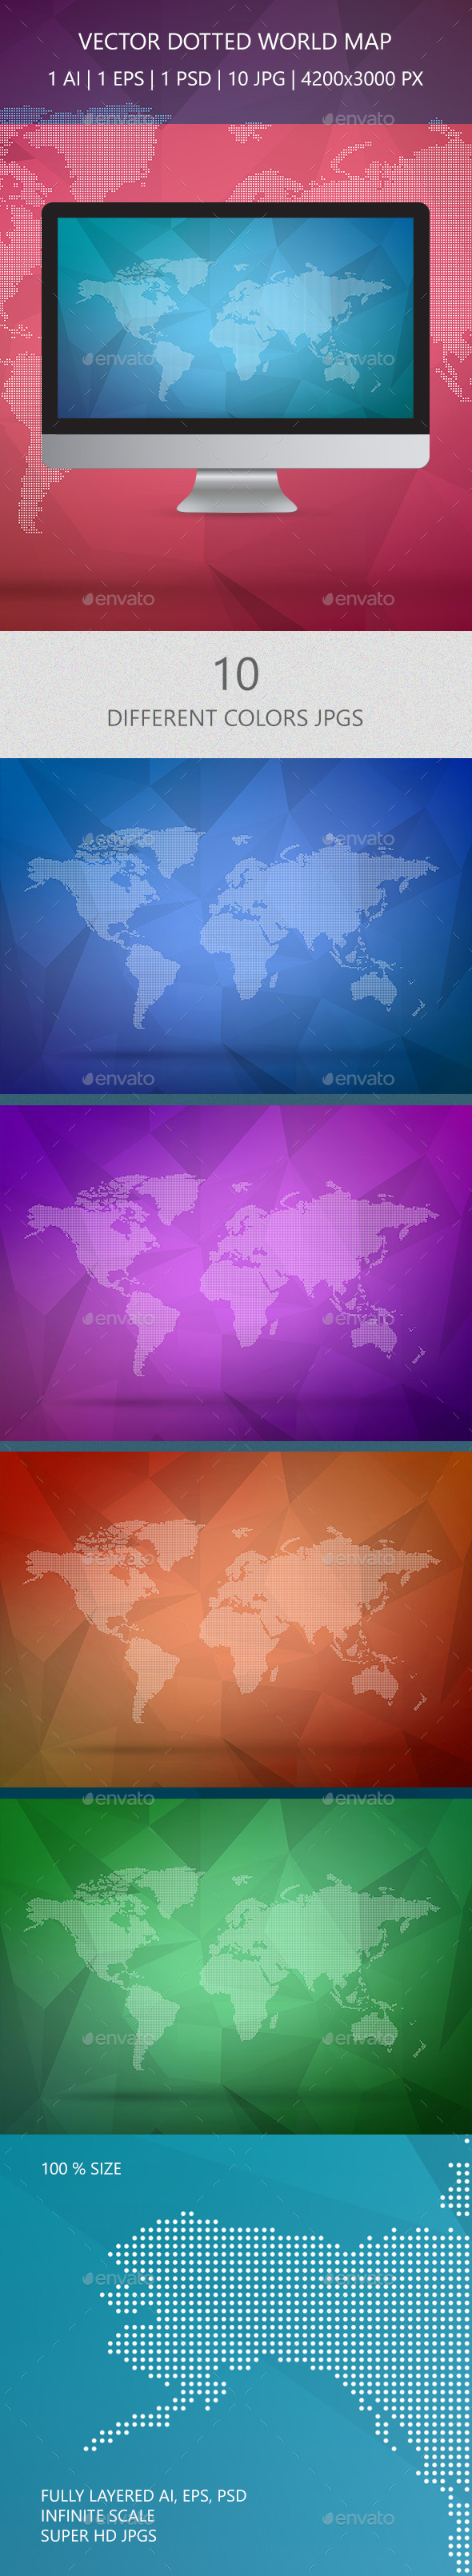 GraphicRiver Dotted Wold Map Vector 10106984